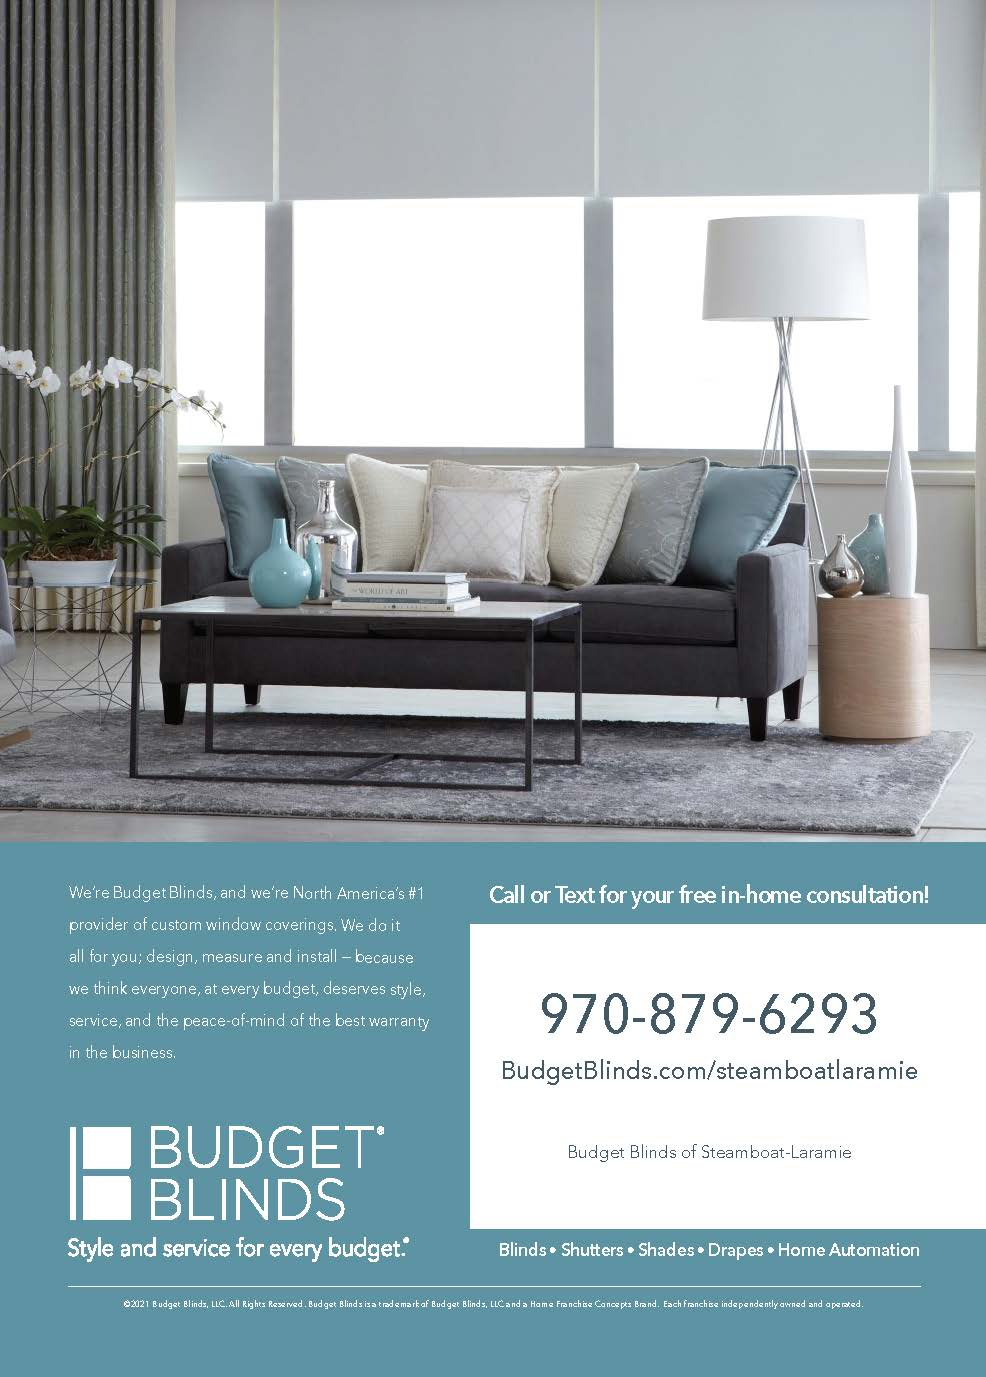 ad for Budget Blinds